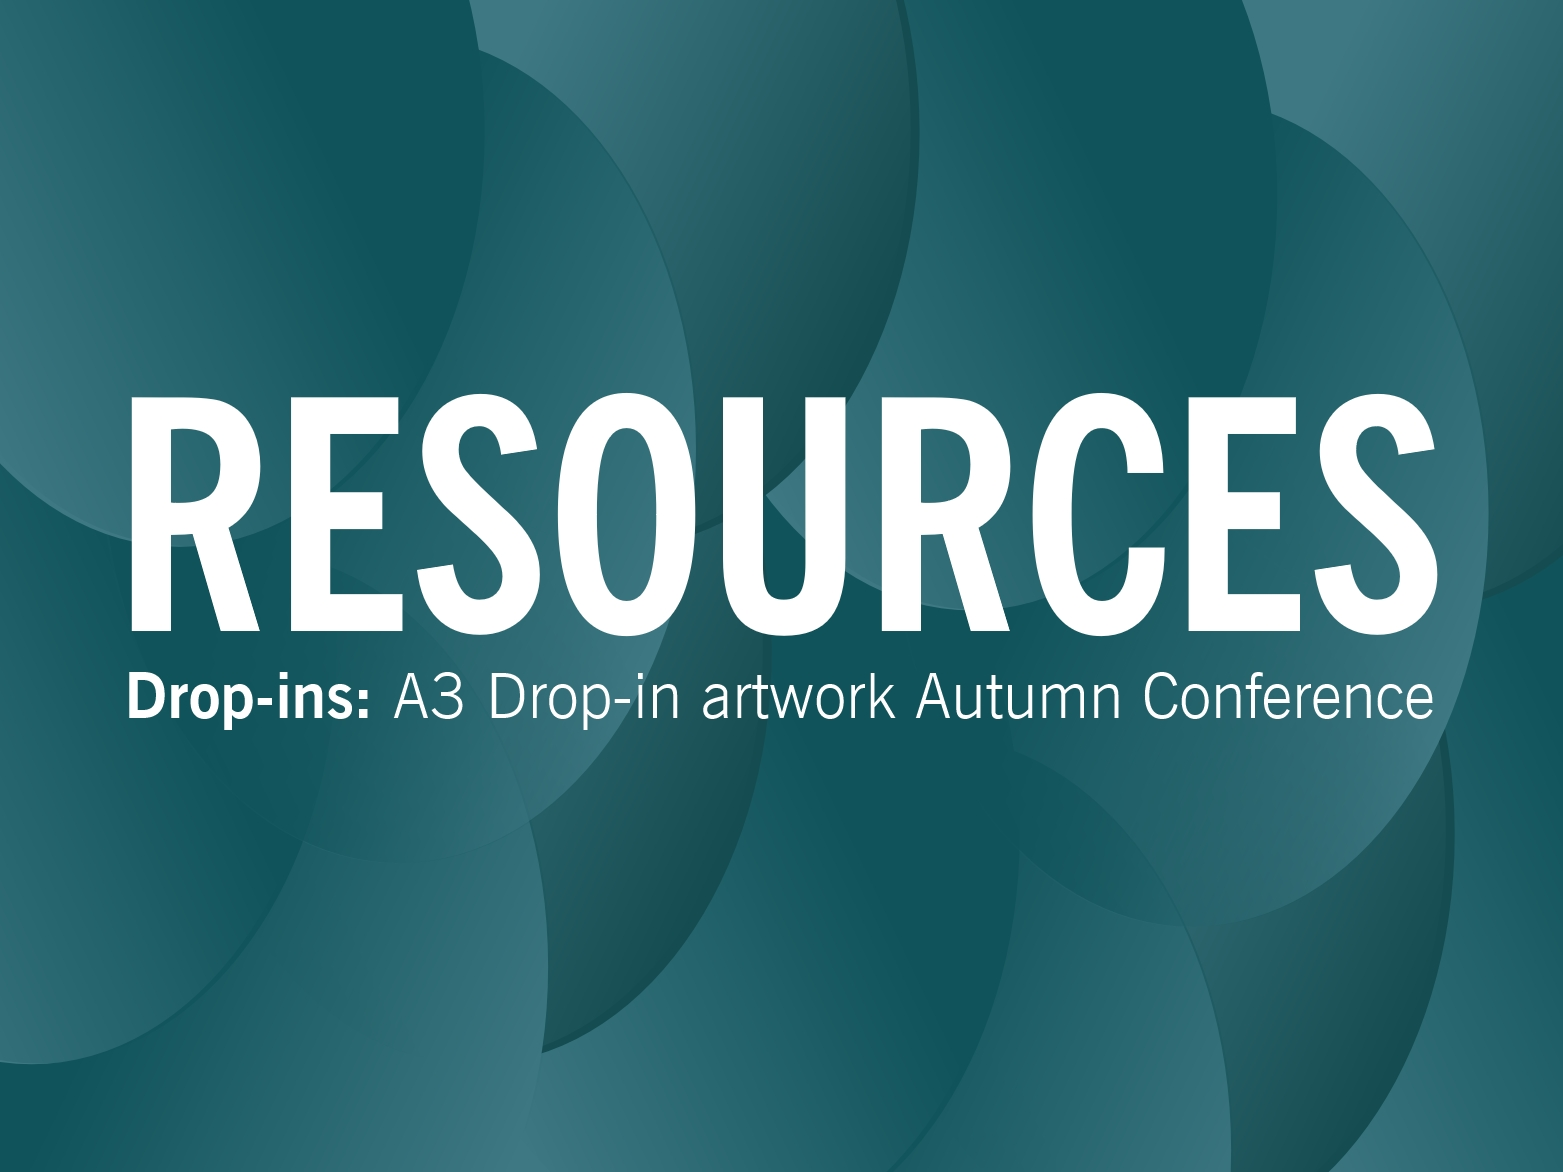 RESOURCES: Autumn Conference Focus drop-in artworks